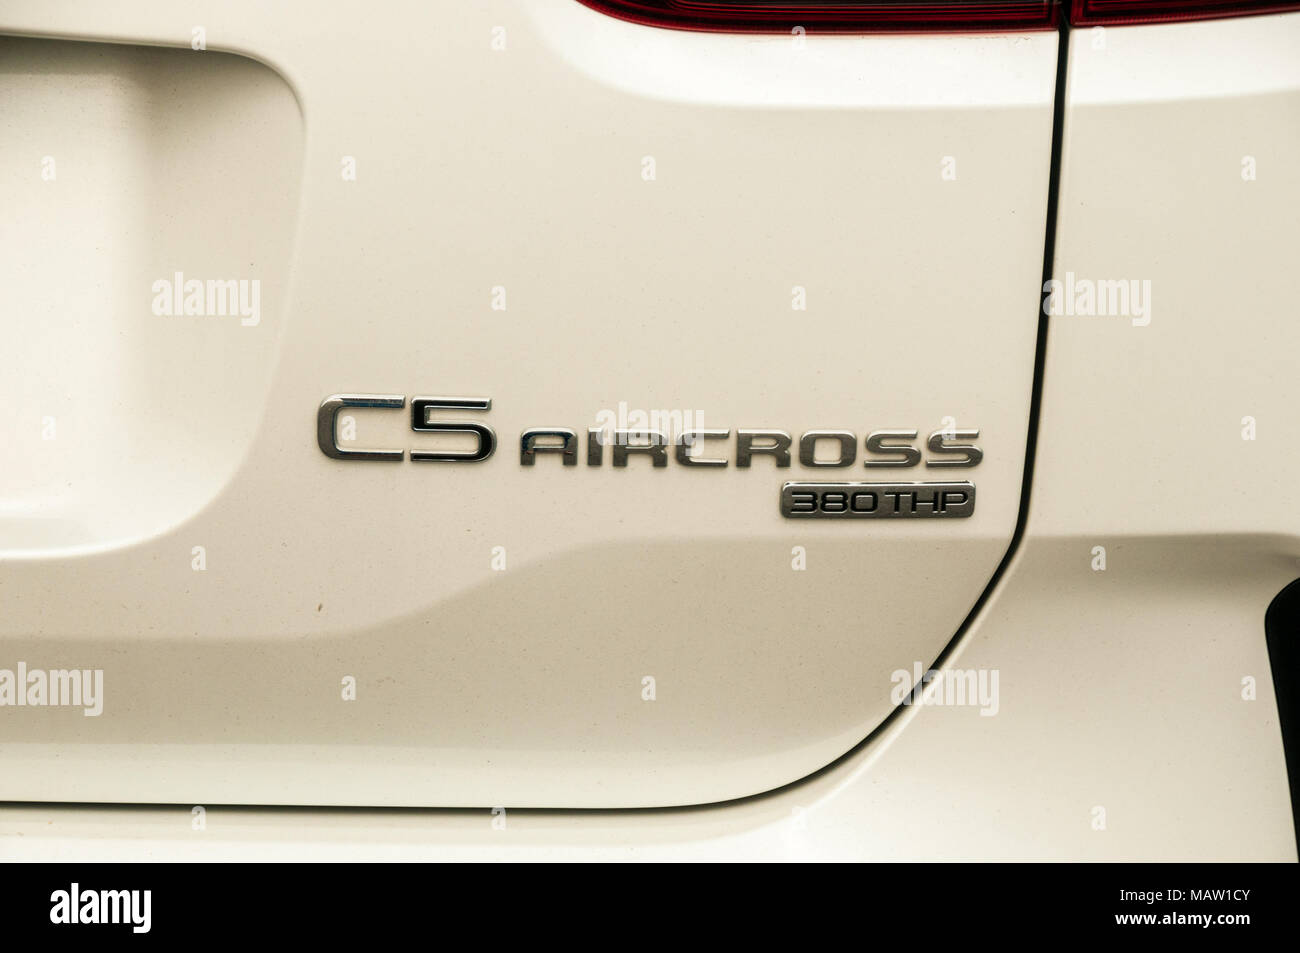 Detail shot of the badge of the Citroen C5 Aircross as on a test drive in Shanghai, China. - Stock Image